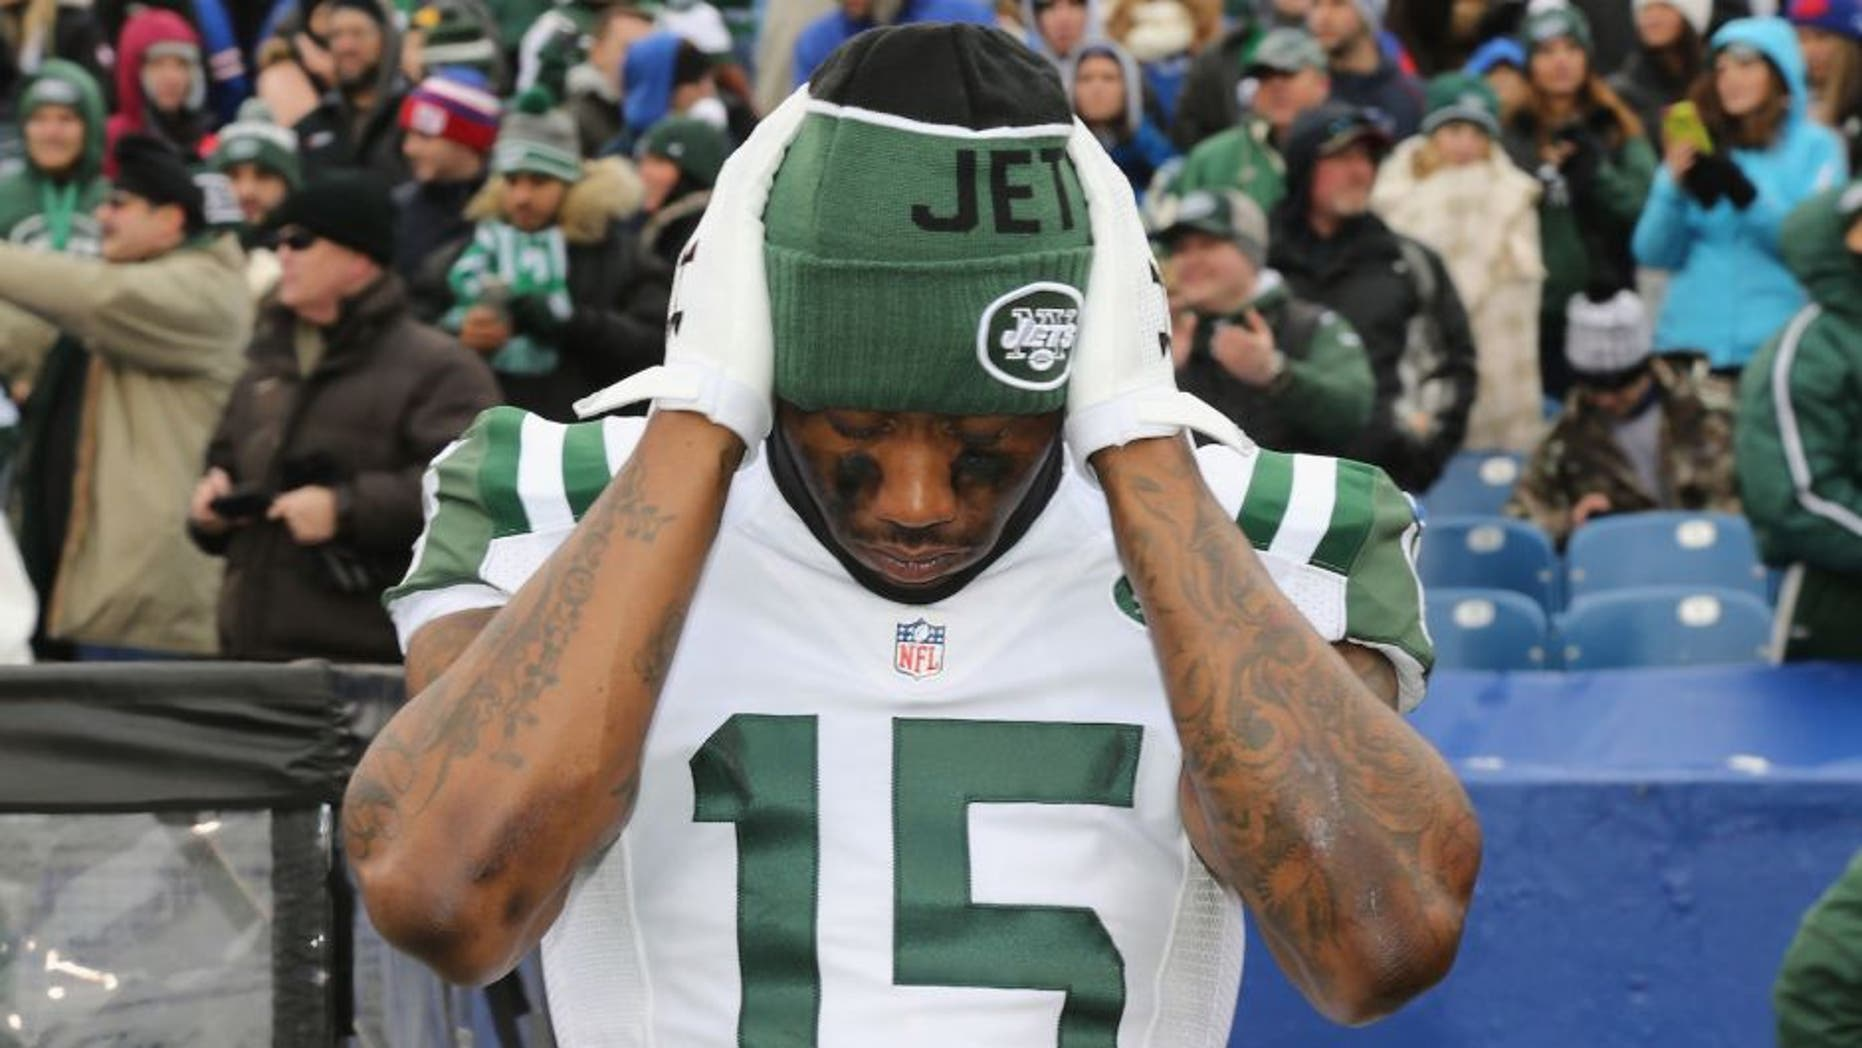 ORCHARD PARK, NY - JANUARY 03: Wide Receiver Brandon Marshall #15 of the New York Jets prepares before the game against the Buffalo Bills at Ralph Wilson Stadium on January 3, 2016 in Orchard Park, New York. (Photo by Al Pereira/Getty Images for New York Jets)